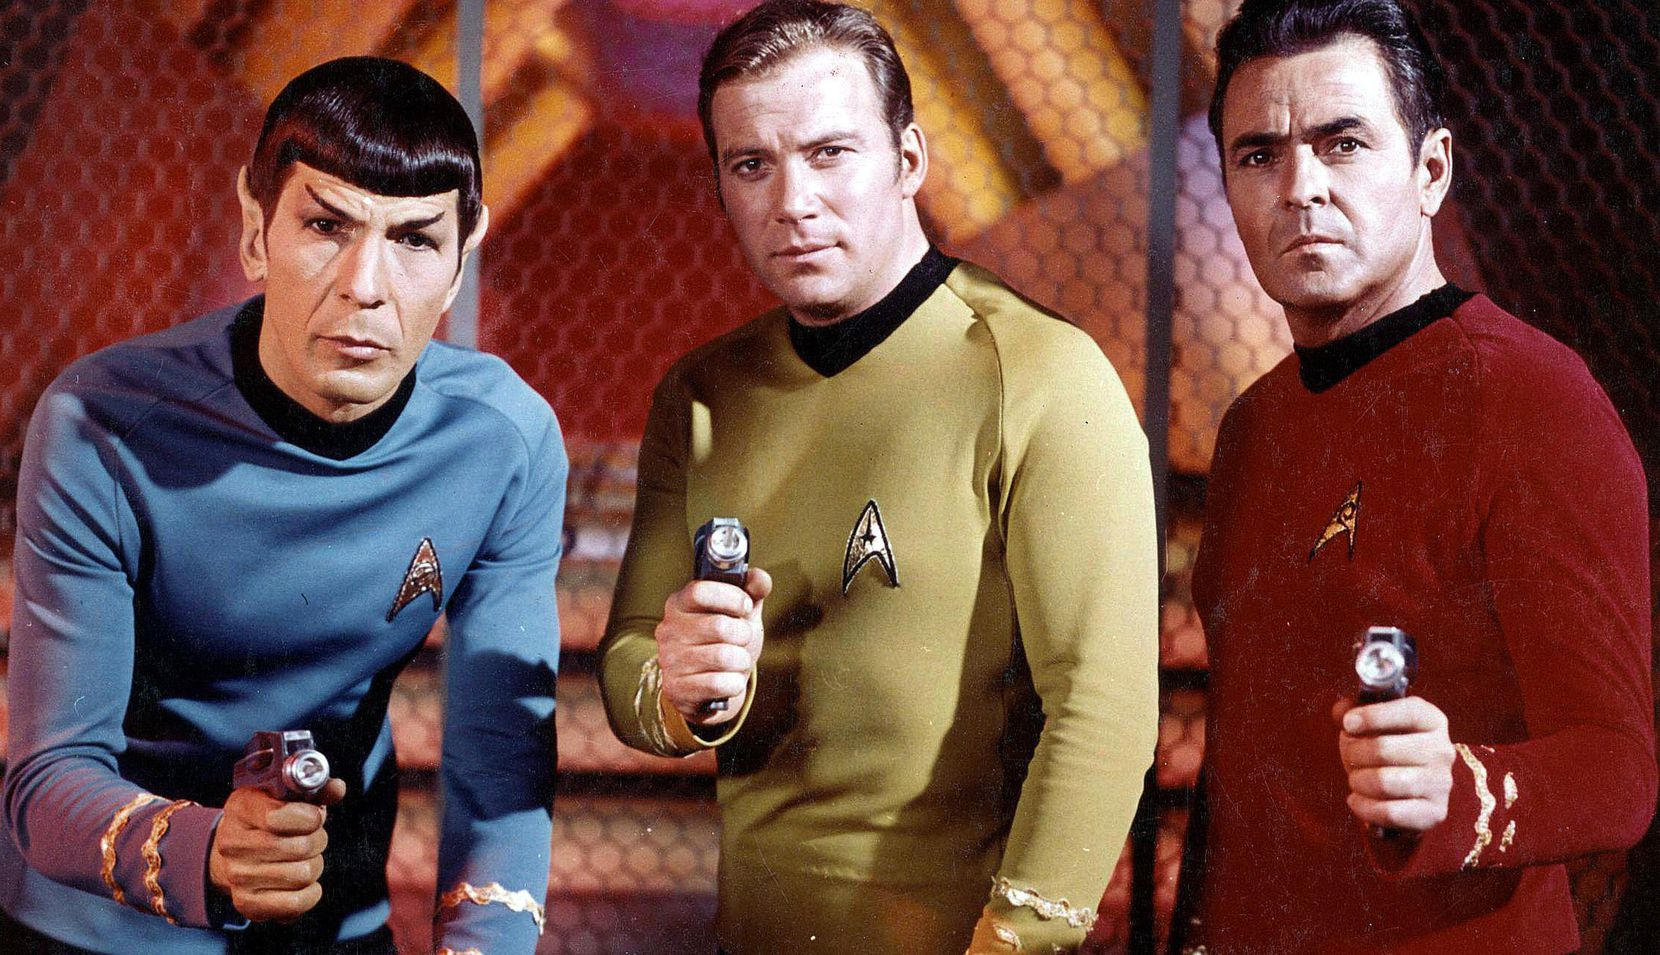 """Actors Leonard Nimoy, William Shatner and James Doohan from the original """"Star Trek"""" series. The show premiered 50 years ago as one of the new fall shows on NBC's 1966-1967 schedule."""